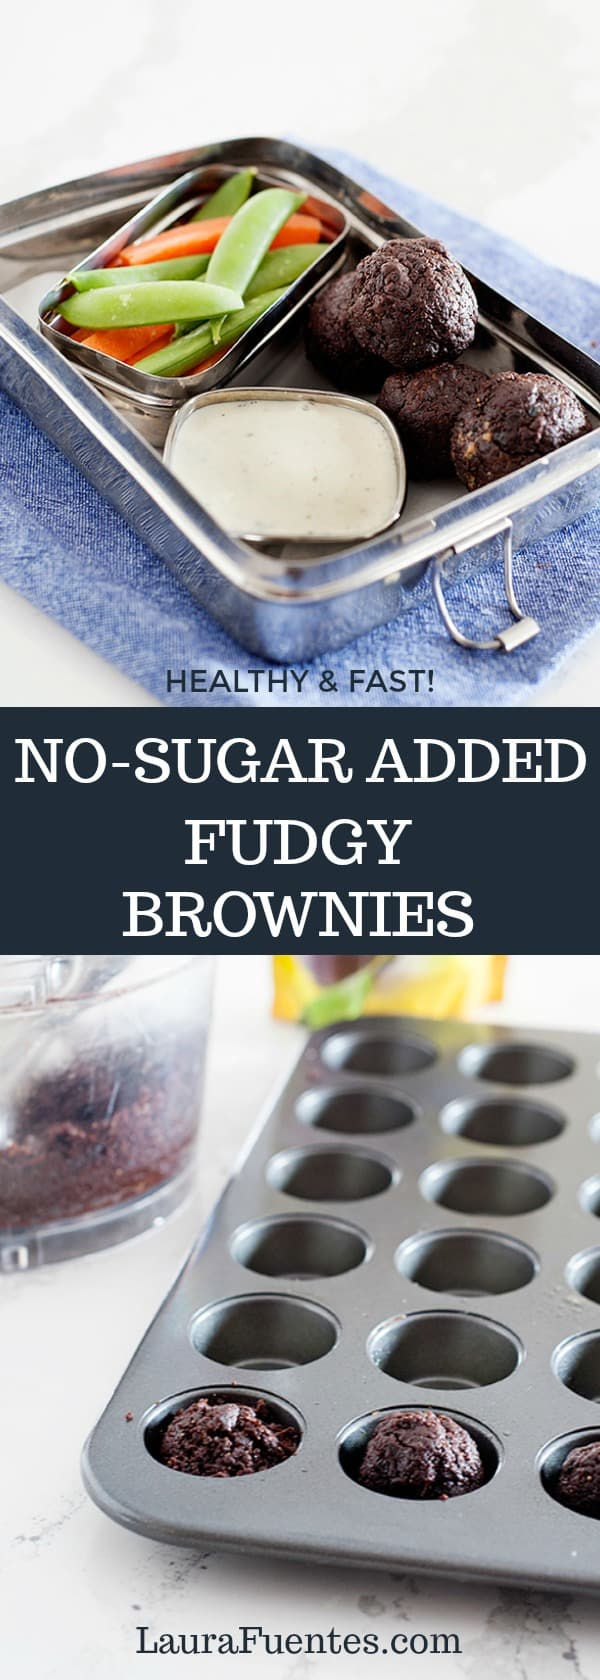 these no sugar added healthy fudgy brownies have just 3 ingredients and are super easy to make as a healthy treat or snack!